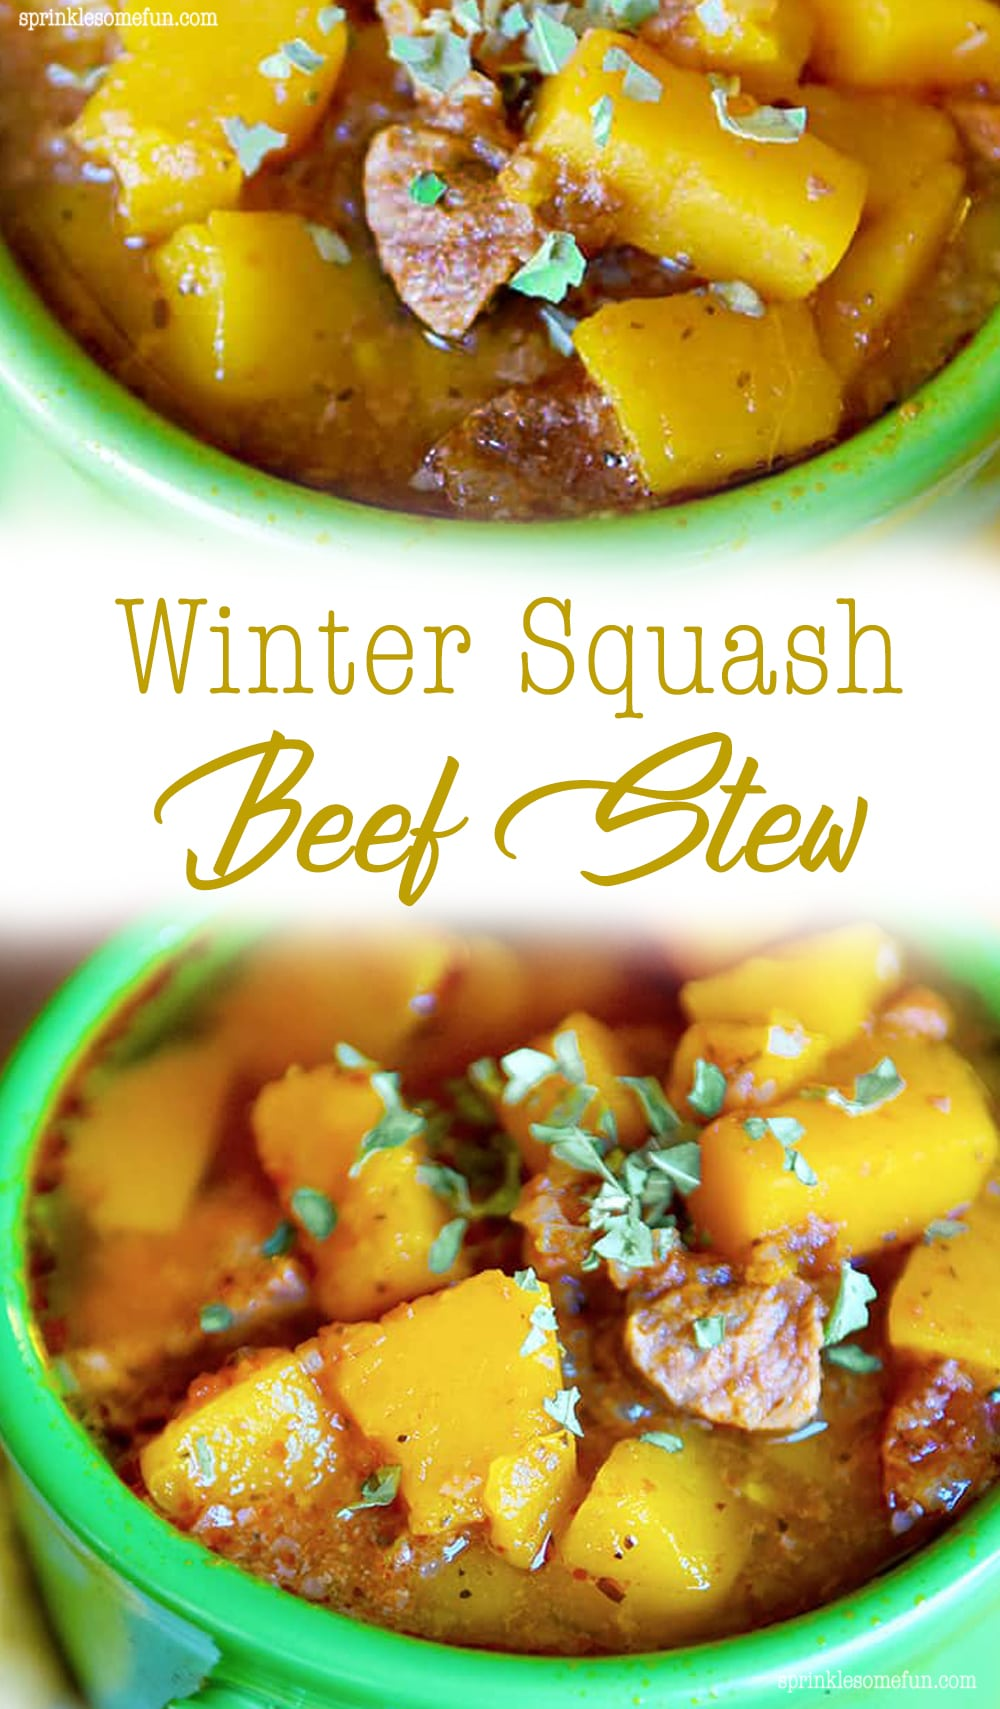 Winter Squash Beef Stew is a rich and hearty beef stew made with a delicately sweet Kabocha squash and Italian herbs.  This stew is perfect for a cold night when you need to warm up with a comforting meal. #comfortfood #beefstew #wintersquash #squashstew #squash #Kabocha #Japanesepumpkin #stew #soup #wintermeal #hearty #warming